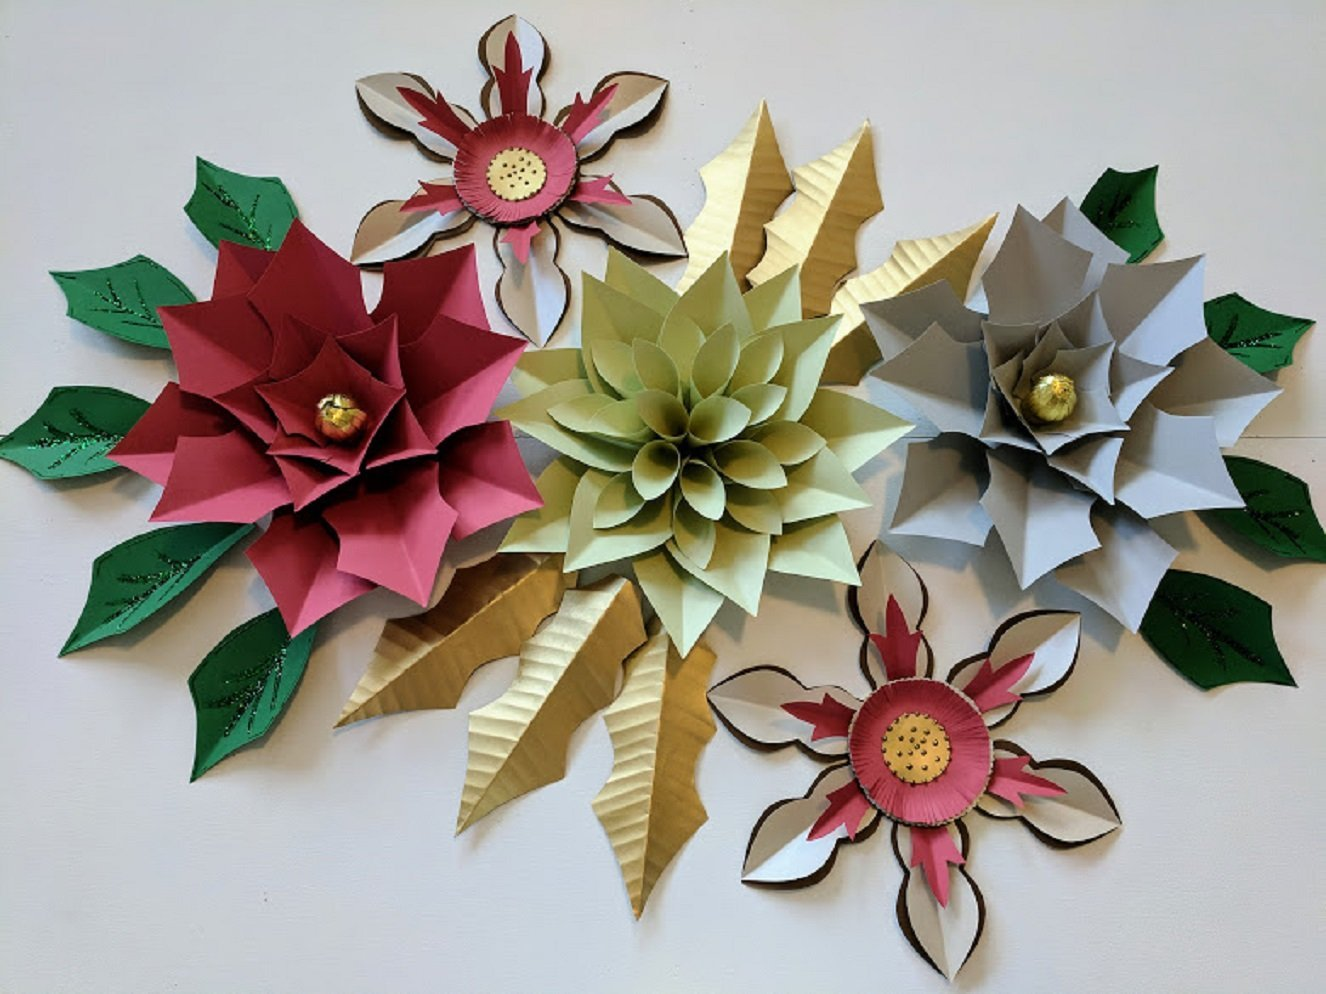 Paper flowers christmas backdrops includes 5 paper flowers 15 paper flowers christmas backdrops includes 5 paper flowers 15 paper leaves fully assembled flower adventures mightylinksfo